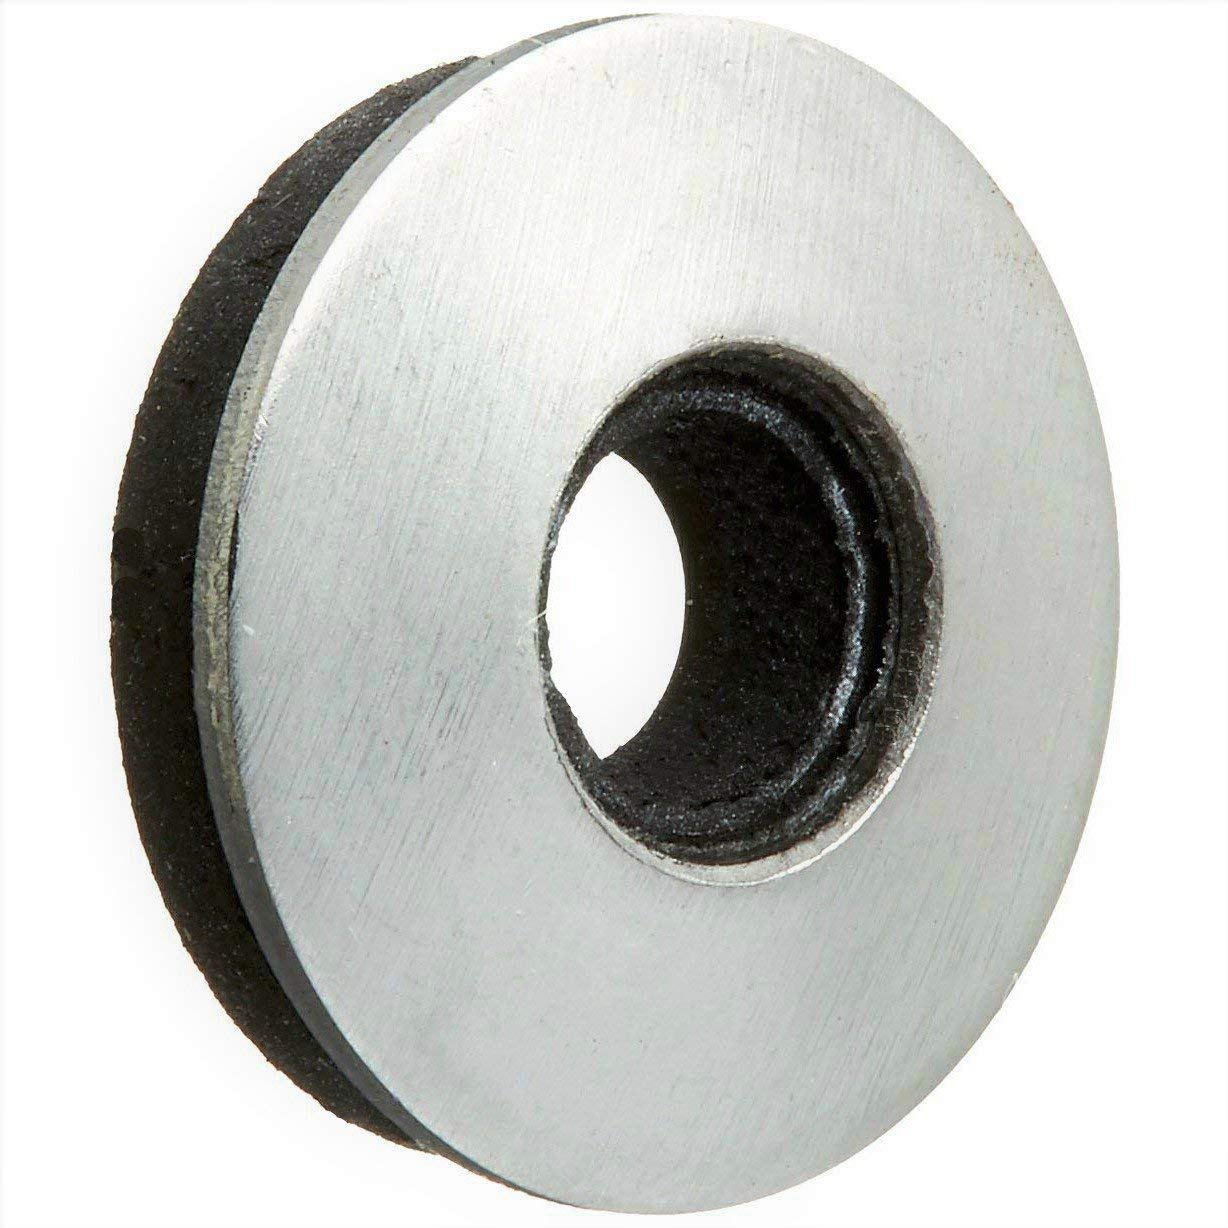 1000 Qty 1/4'' Stainless Steel EPDM Bonded Sealing Neoprene Rubber Washers #14 (BCP743)